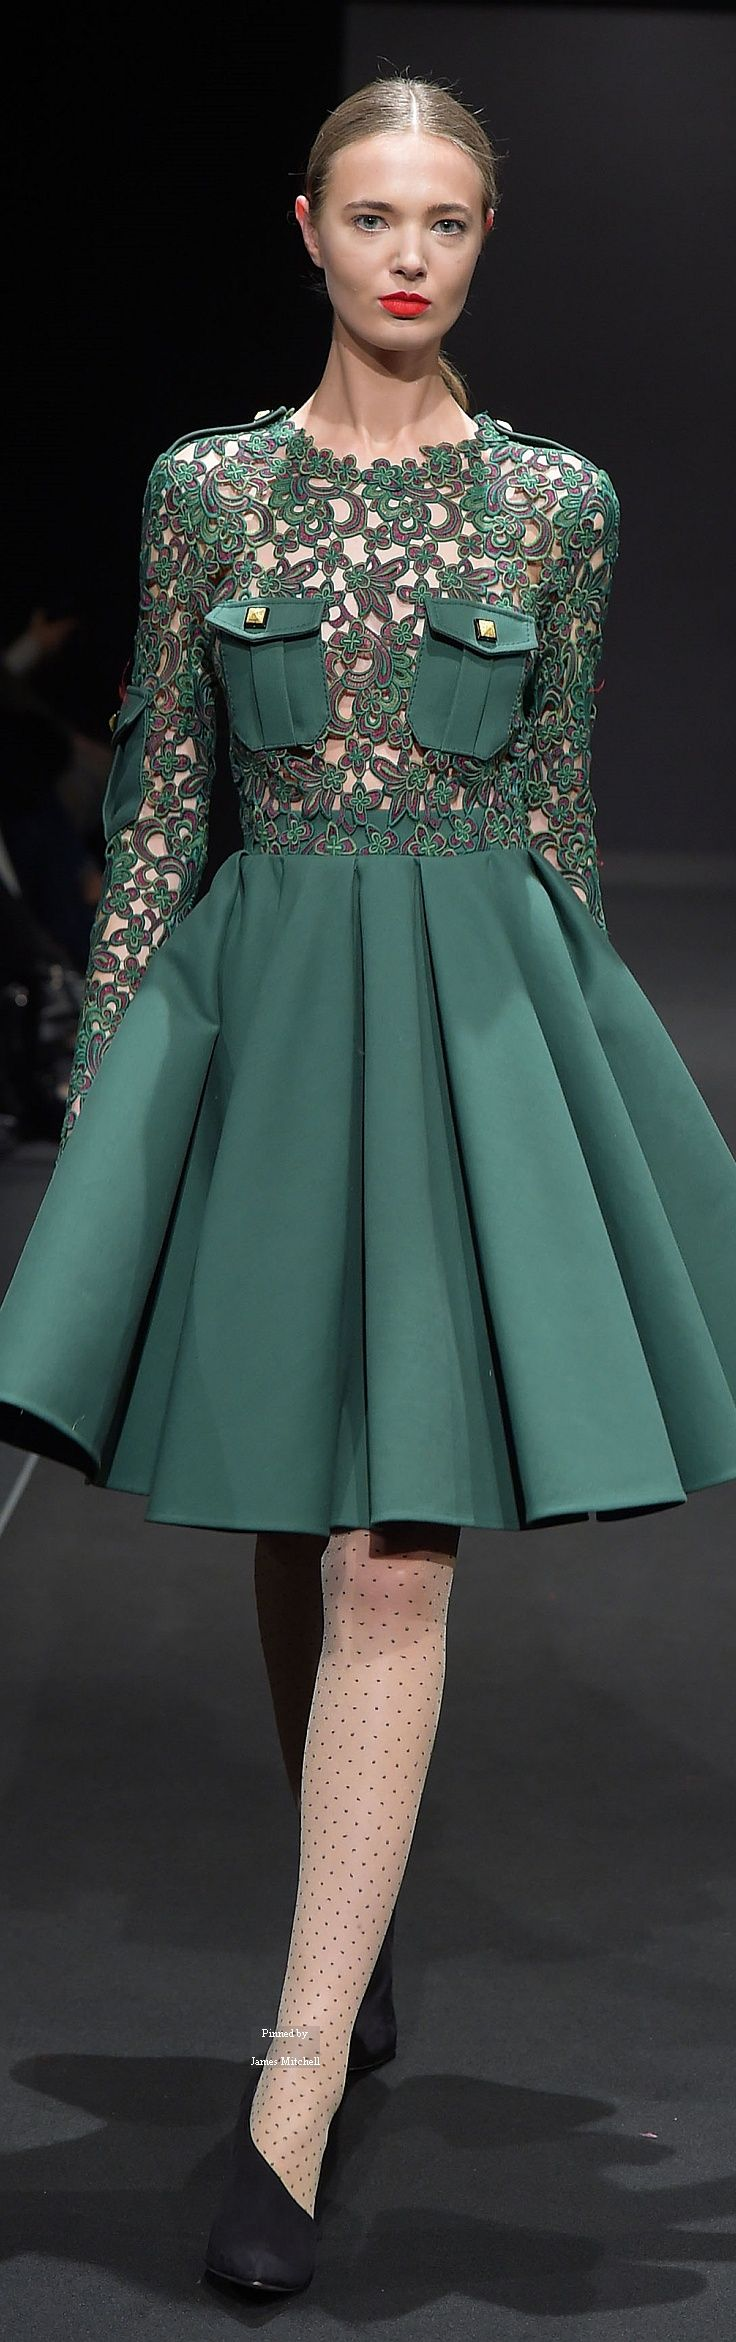 Daizy Shely Collections Fall Winter 2015-16 collection